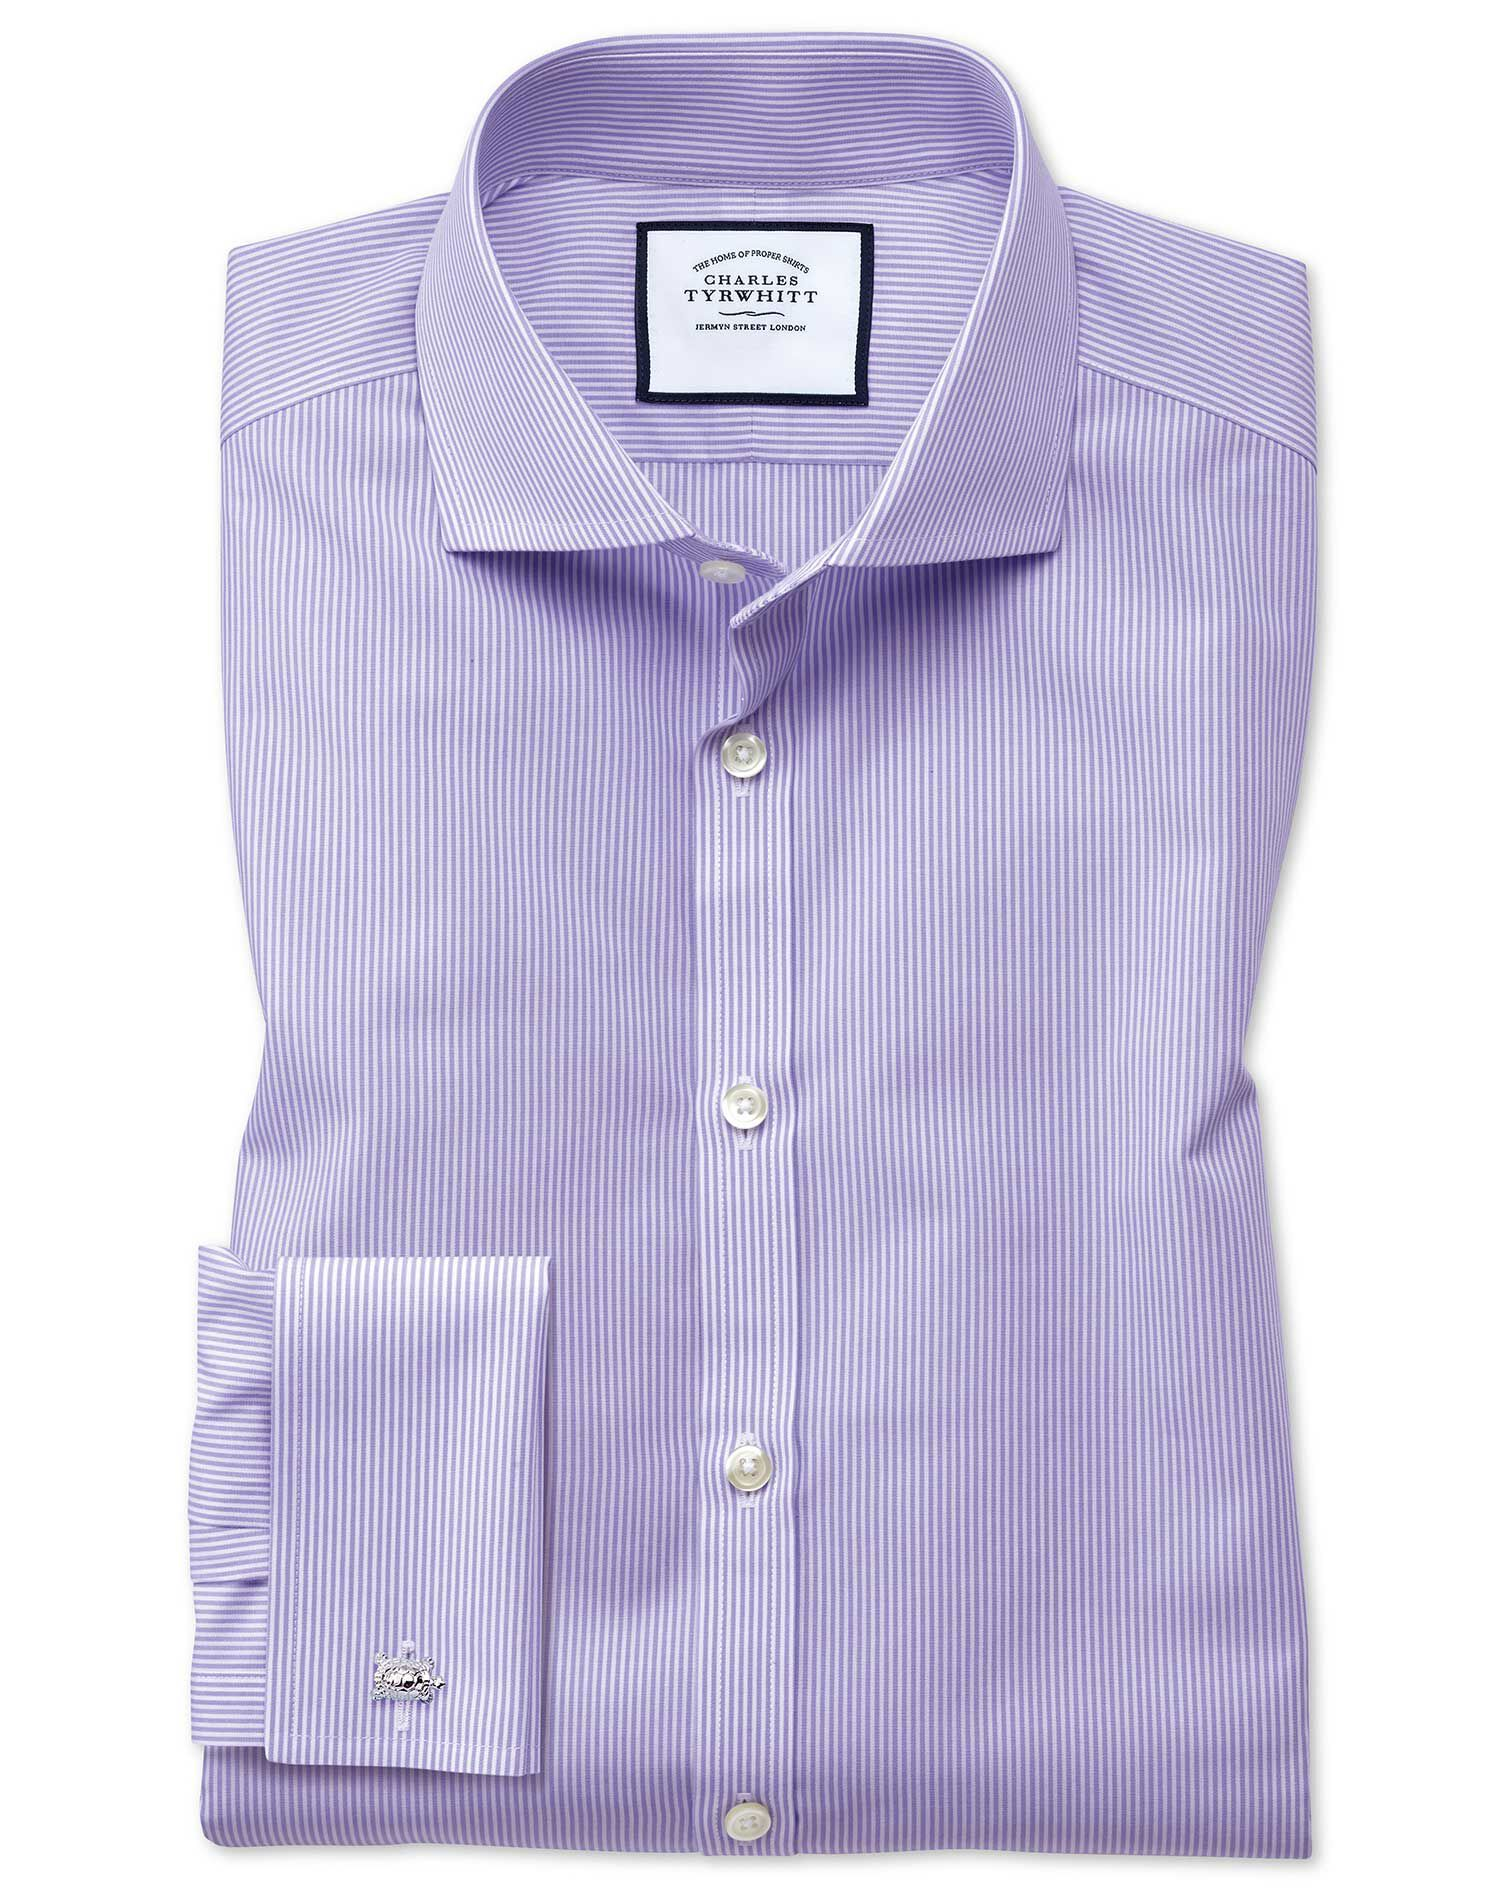 Extra Slim Fit Cutaway Collar Non-Iron Bengal Stripe Lilac Cotton Formal Shirt Single Cuff Size 17.5